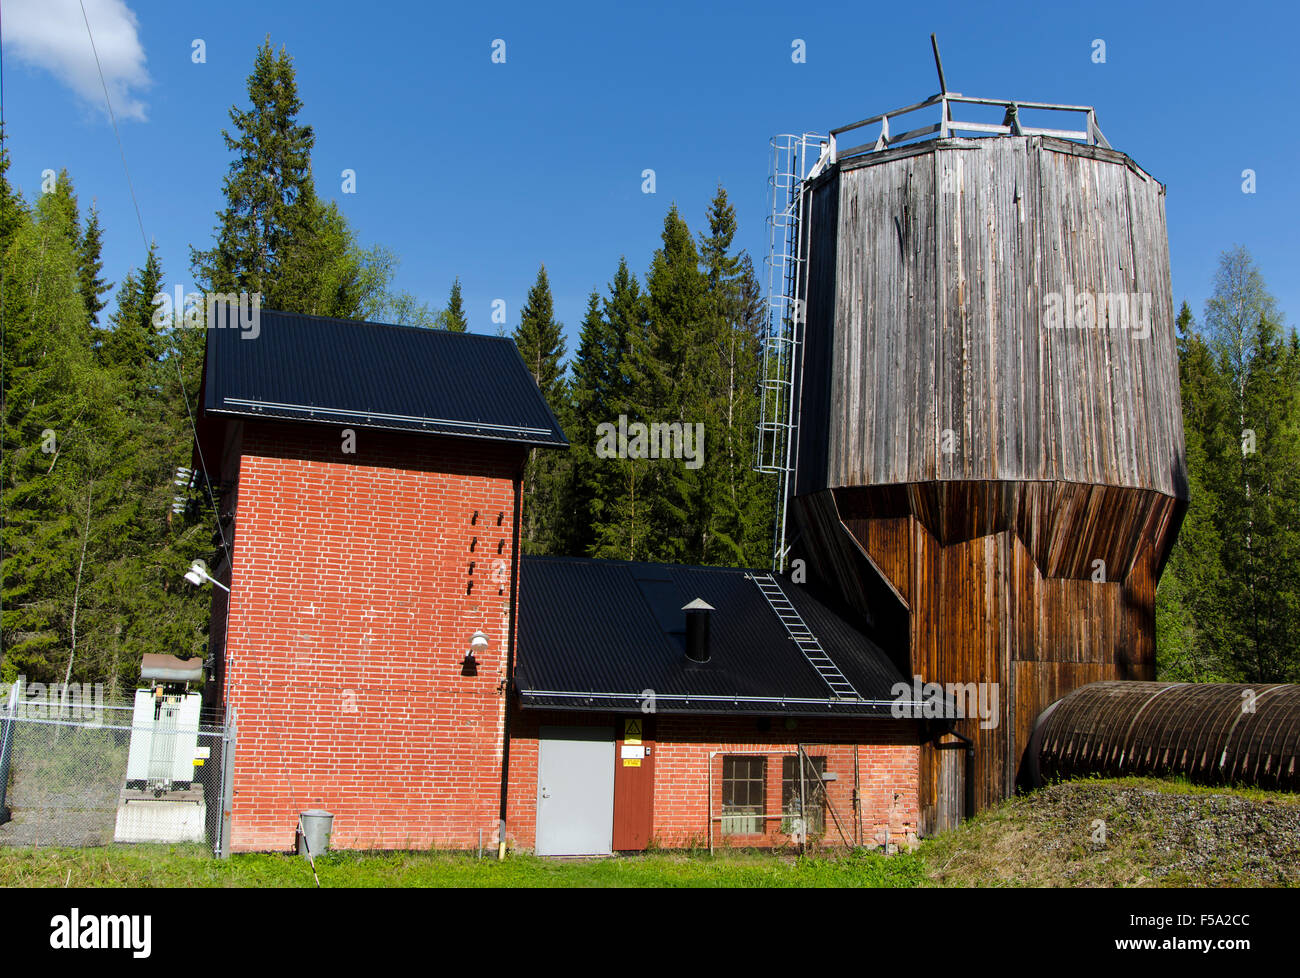 Old electrical powerplant with wooden tube for water, picture from North of Sweden. - Stock Image